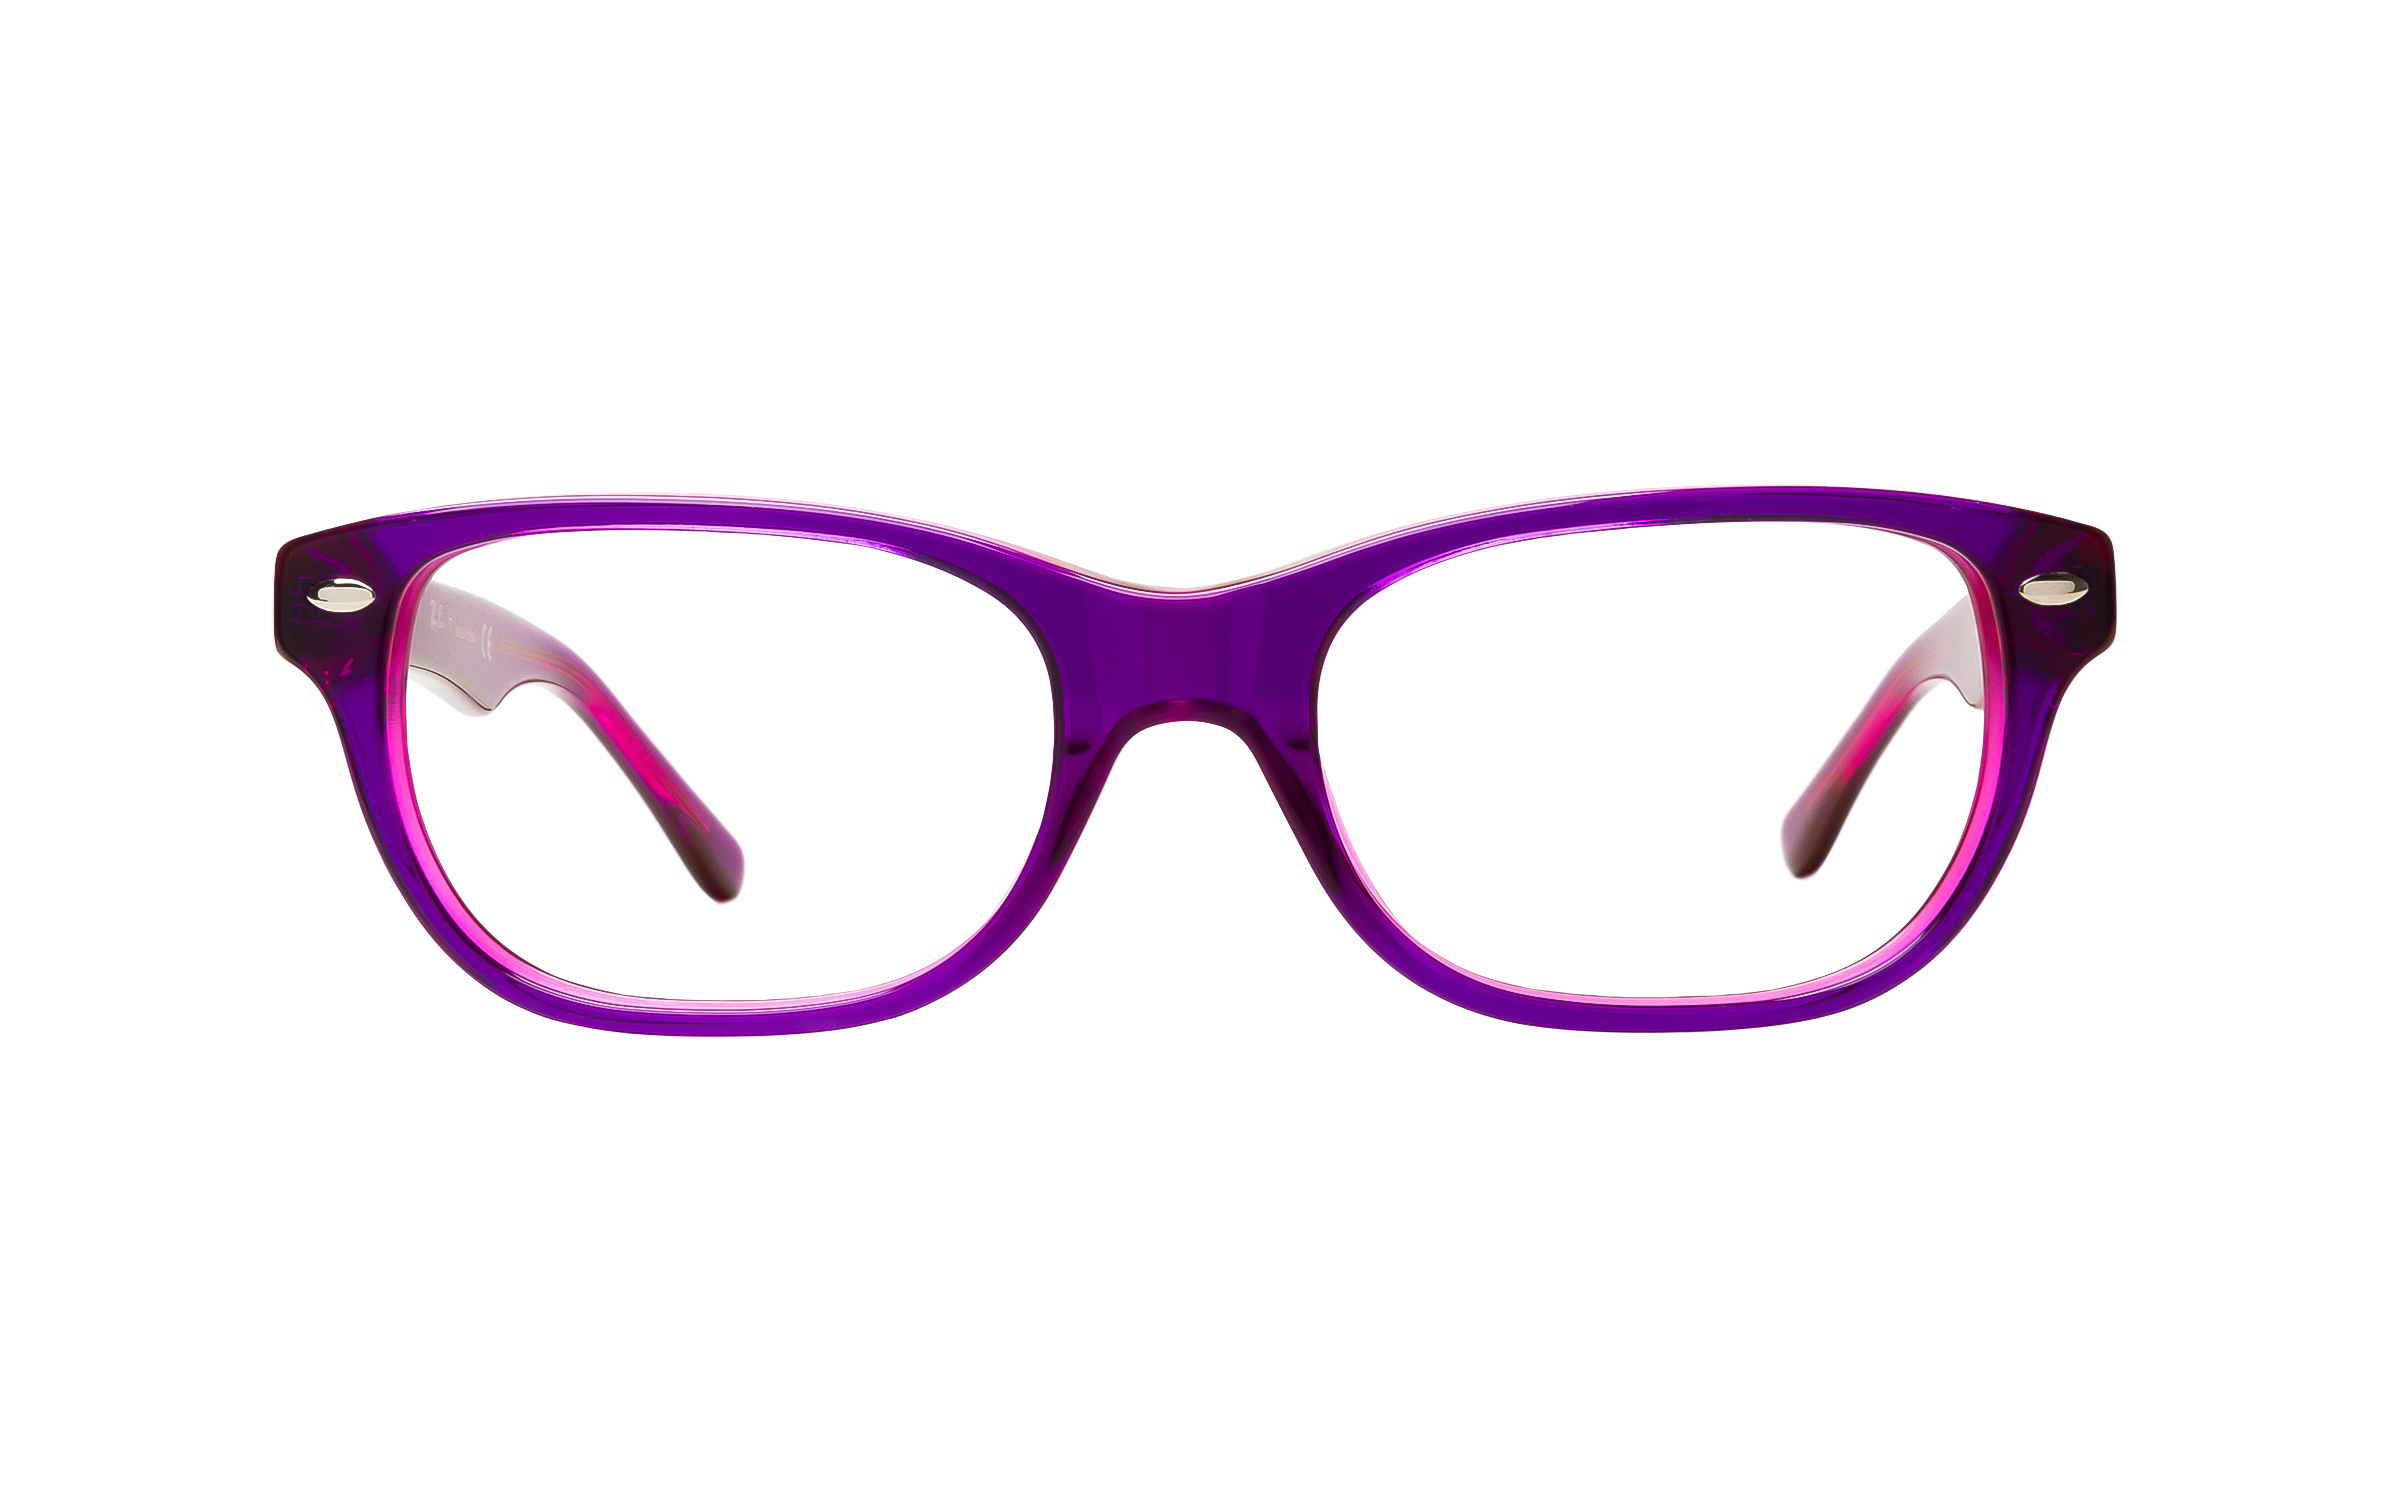 Luxottica Ray-Ban Junior Vista RY1555 3666 Top (48) Eyeglasses and Frame in Violet On Fuchsia Fluorescent Purple/Pink - Online Coastal